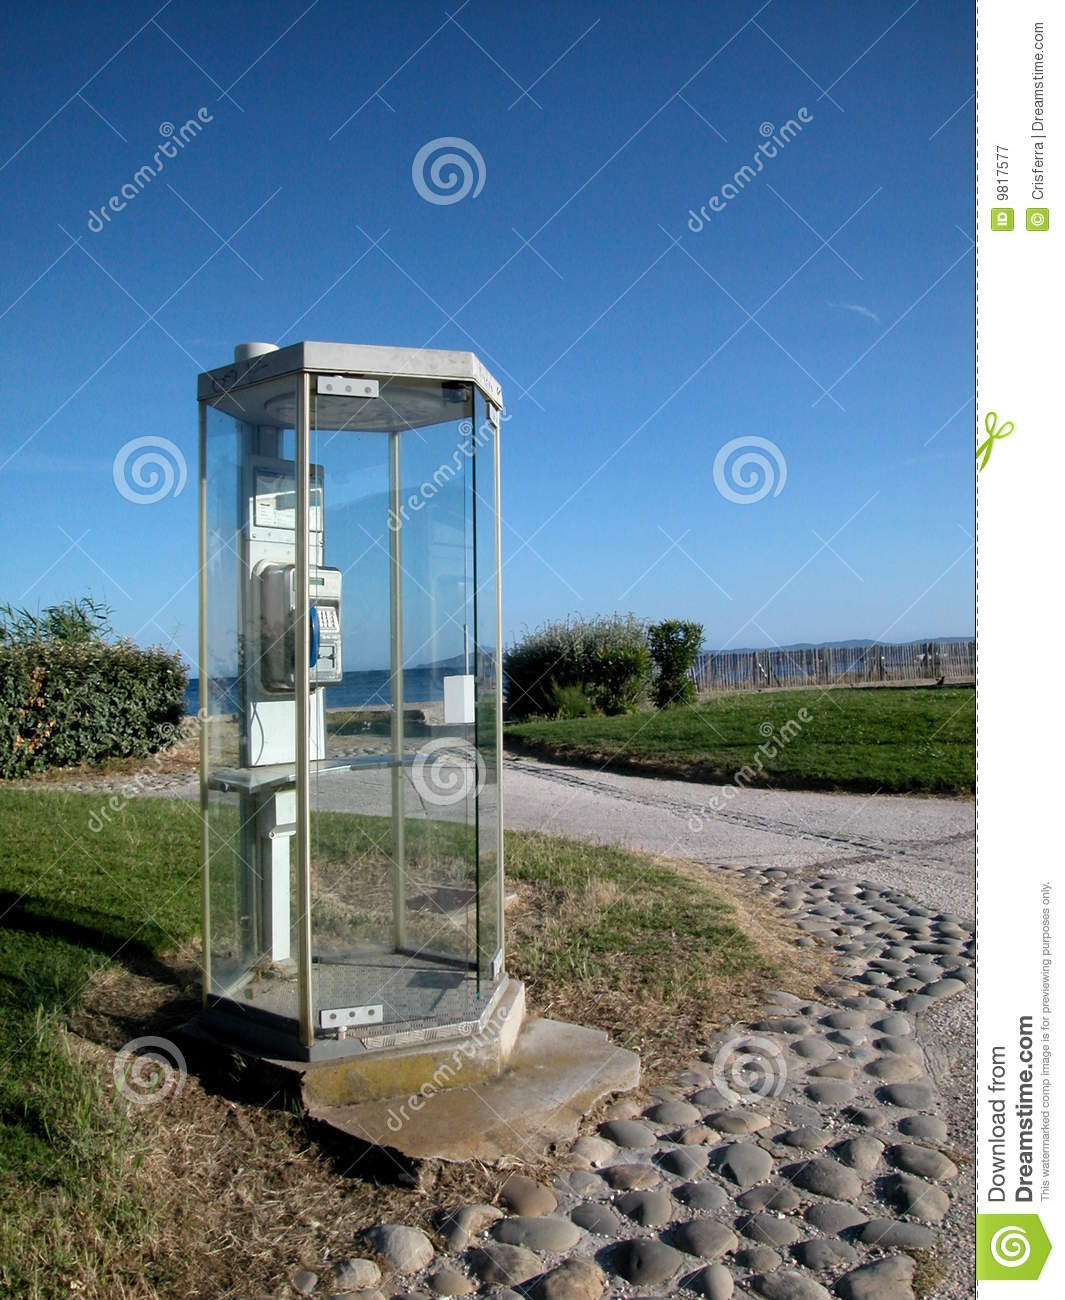 Public phone cabin by the sea royalty free stock for Cabin by the sea